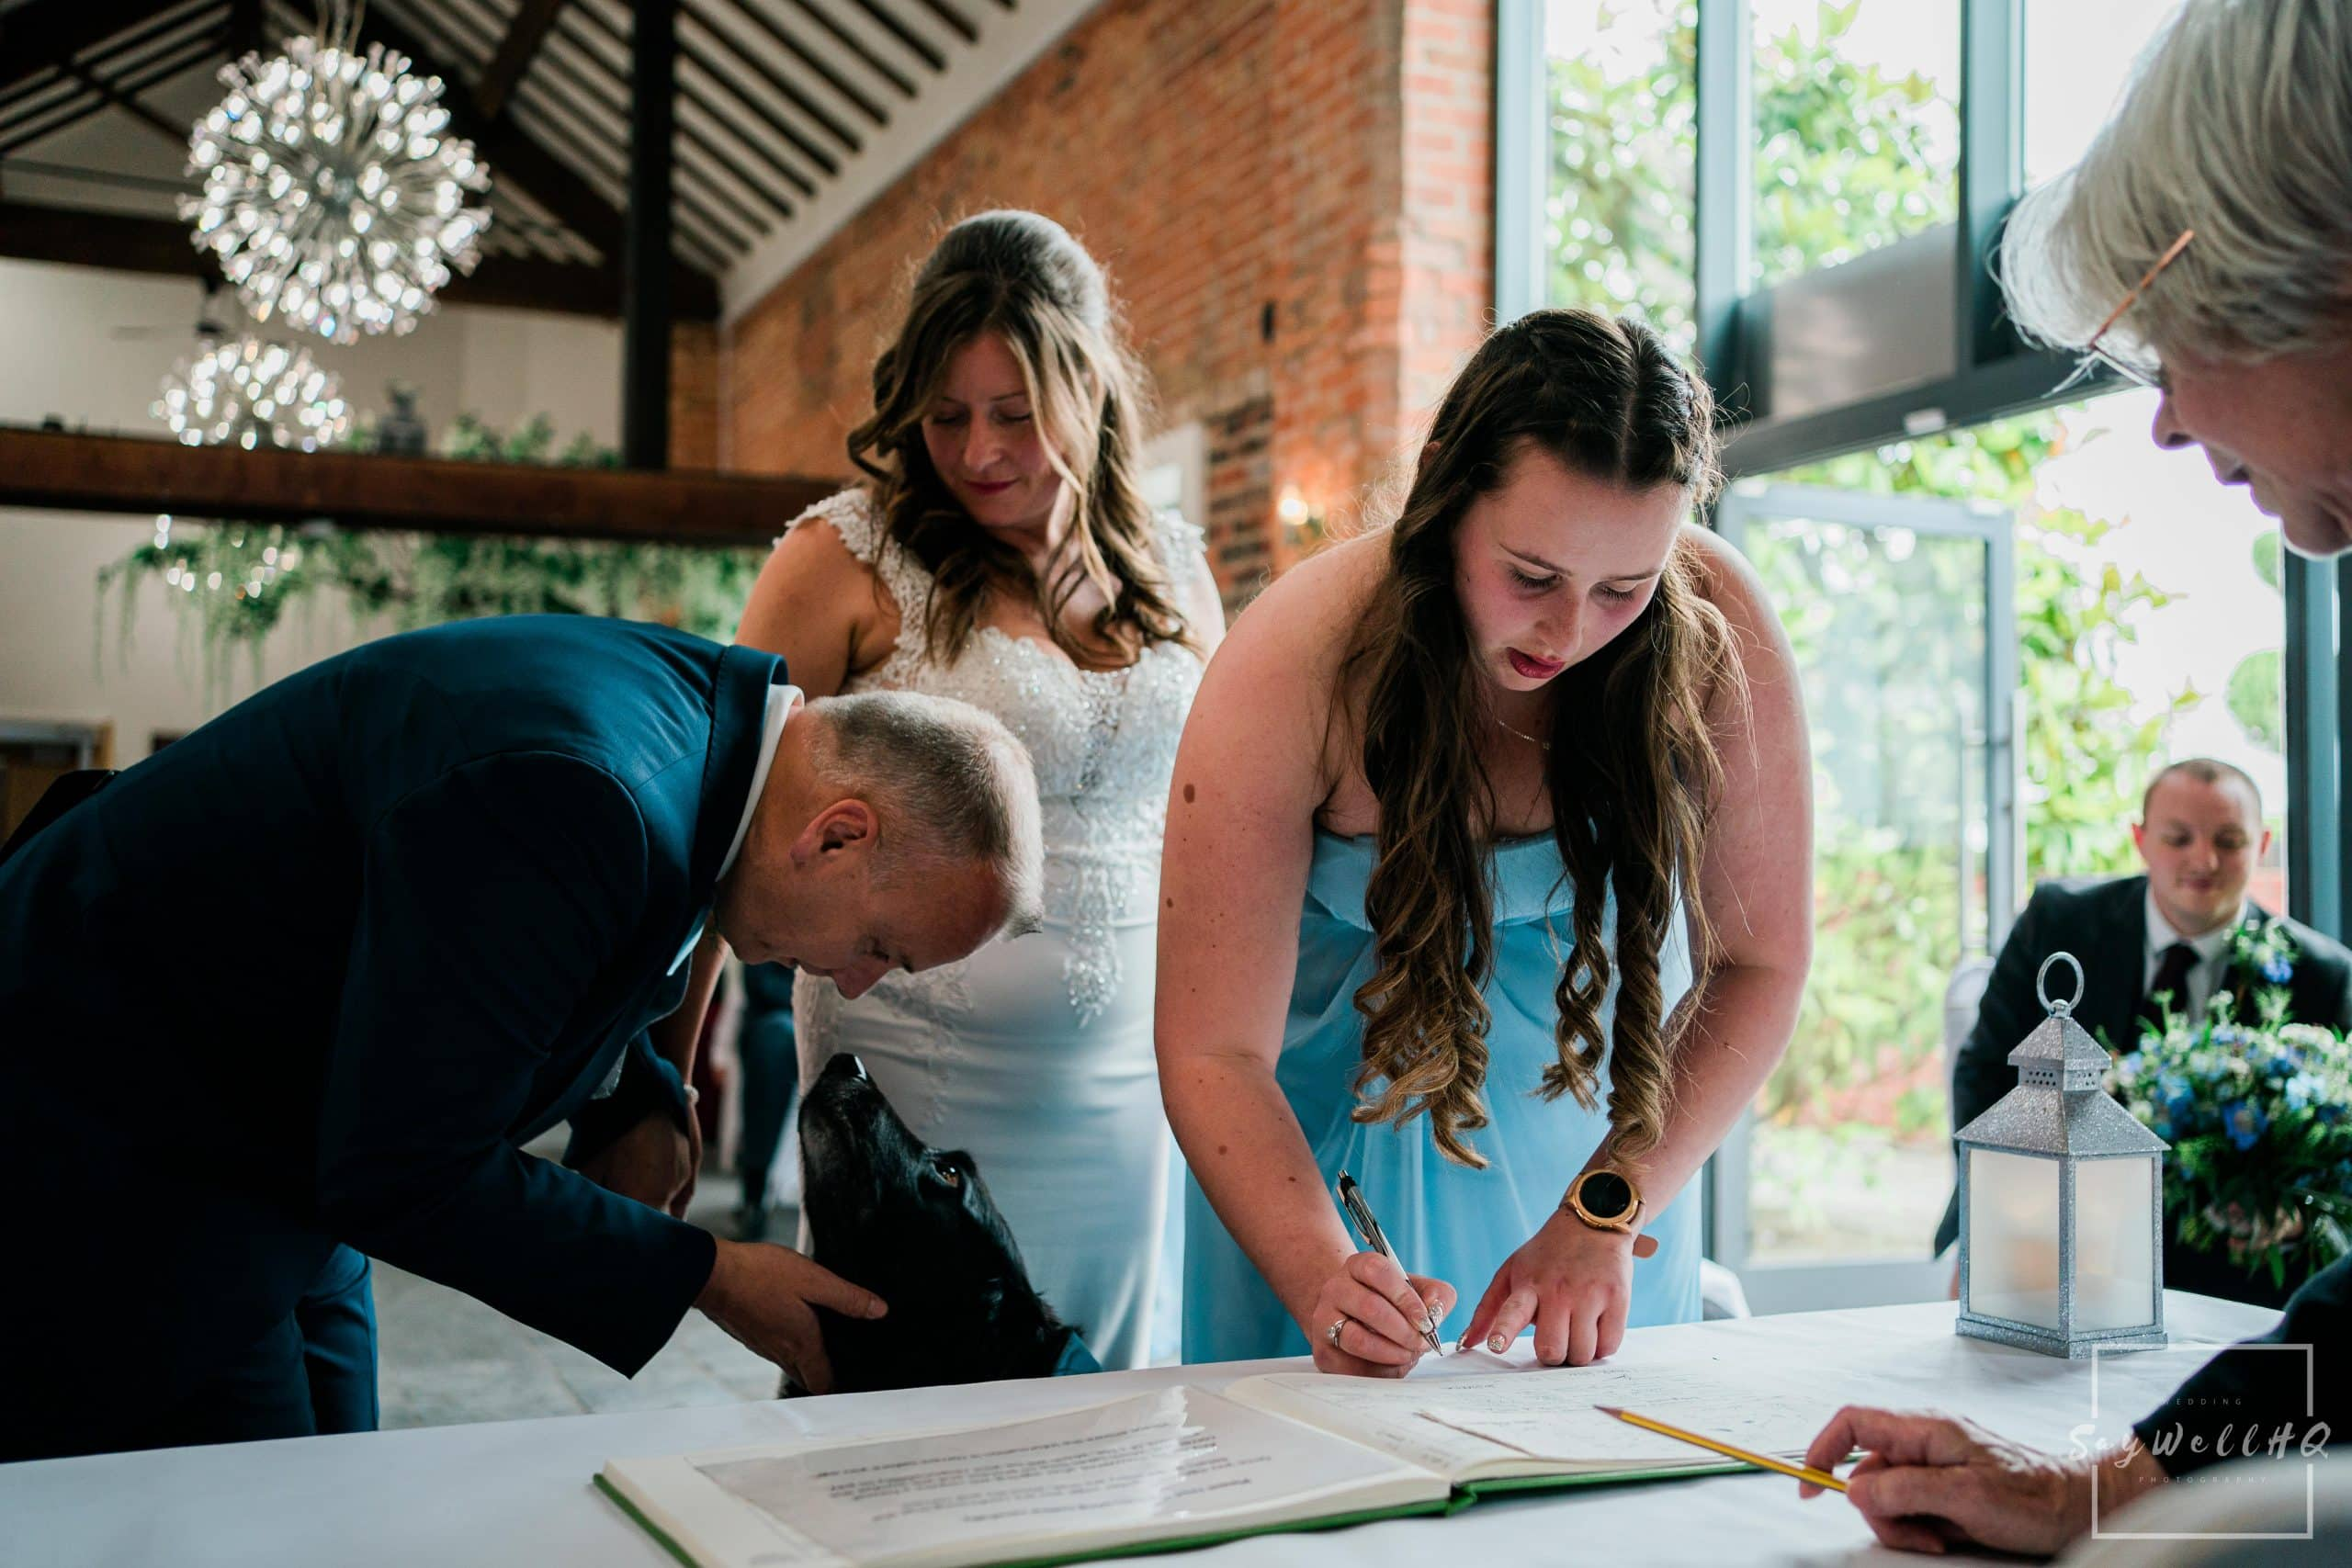 signing the register whilst a pet dog looks on at a Goosedale wedding - Wedding Photography by goosedale wedding photographer Andy Saywell of SaywellHQ